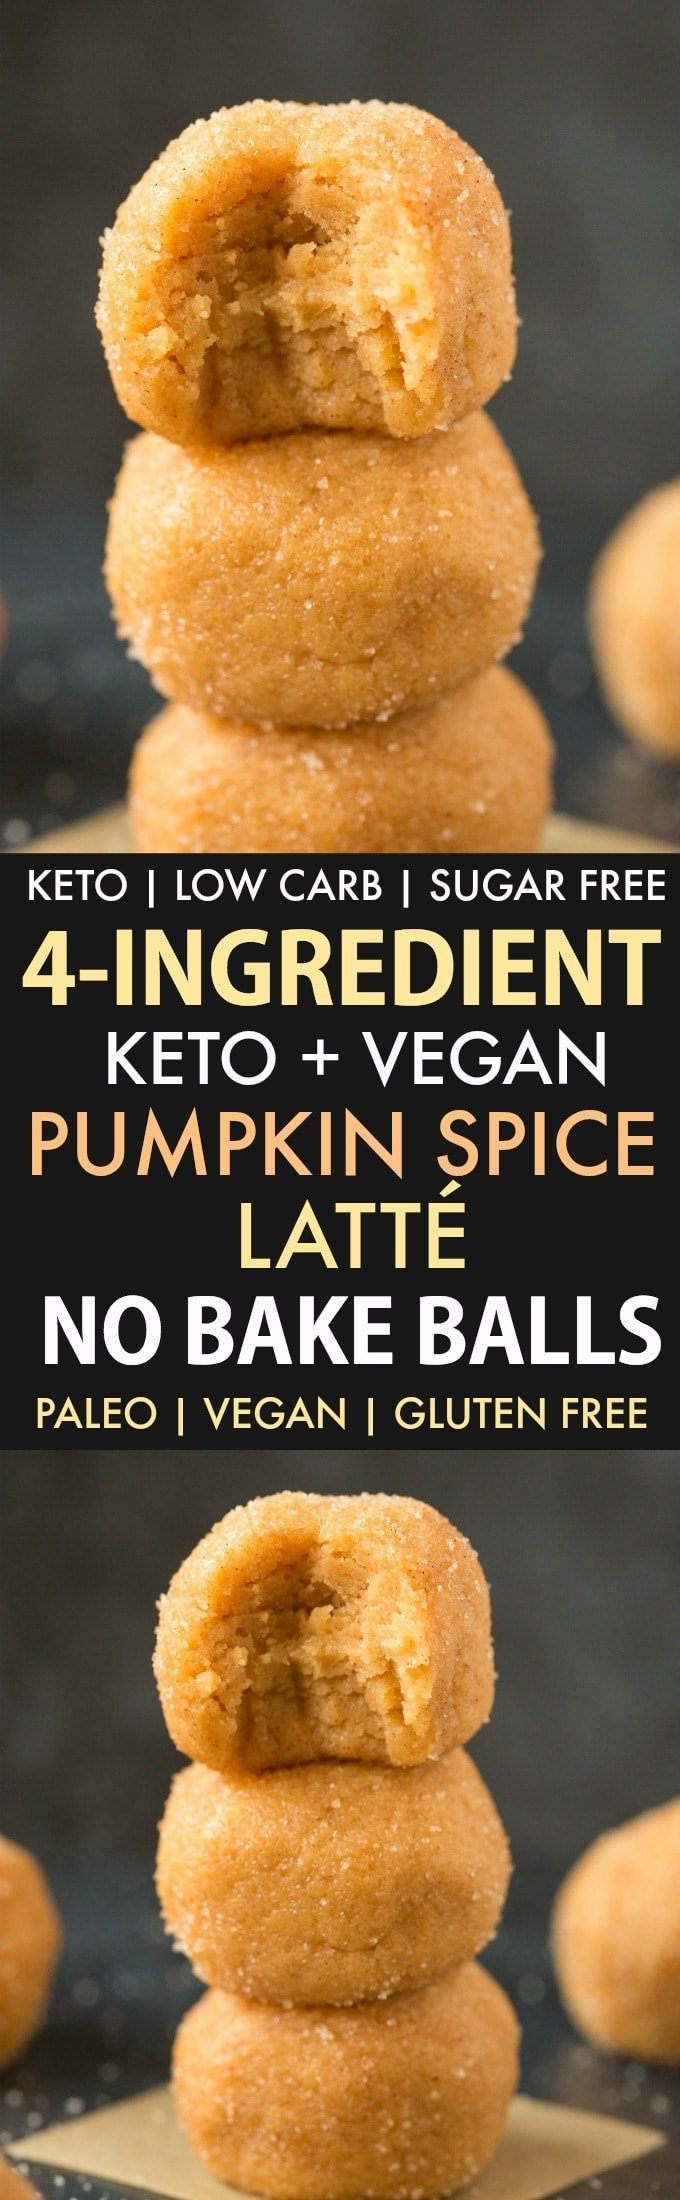 No Bake Pumpkin Spice Latte Energy Bites in a collage